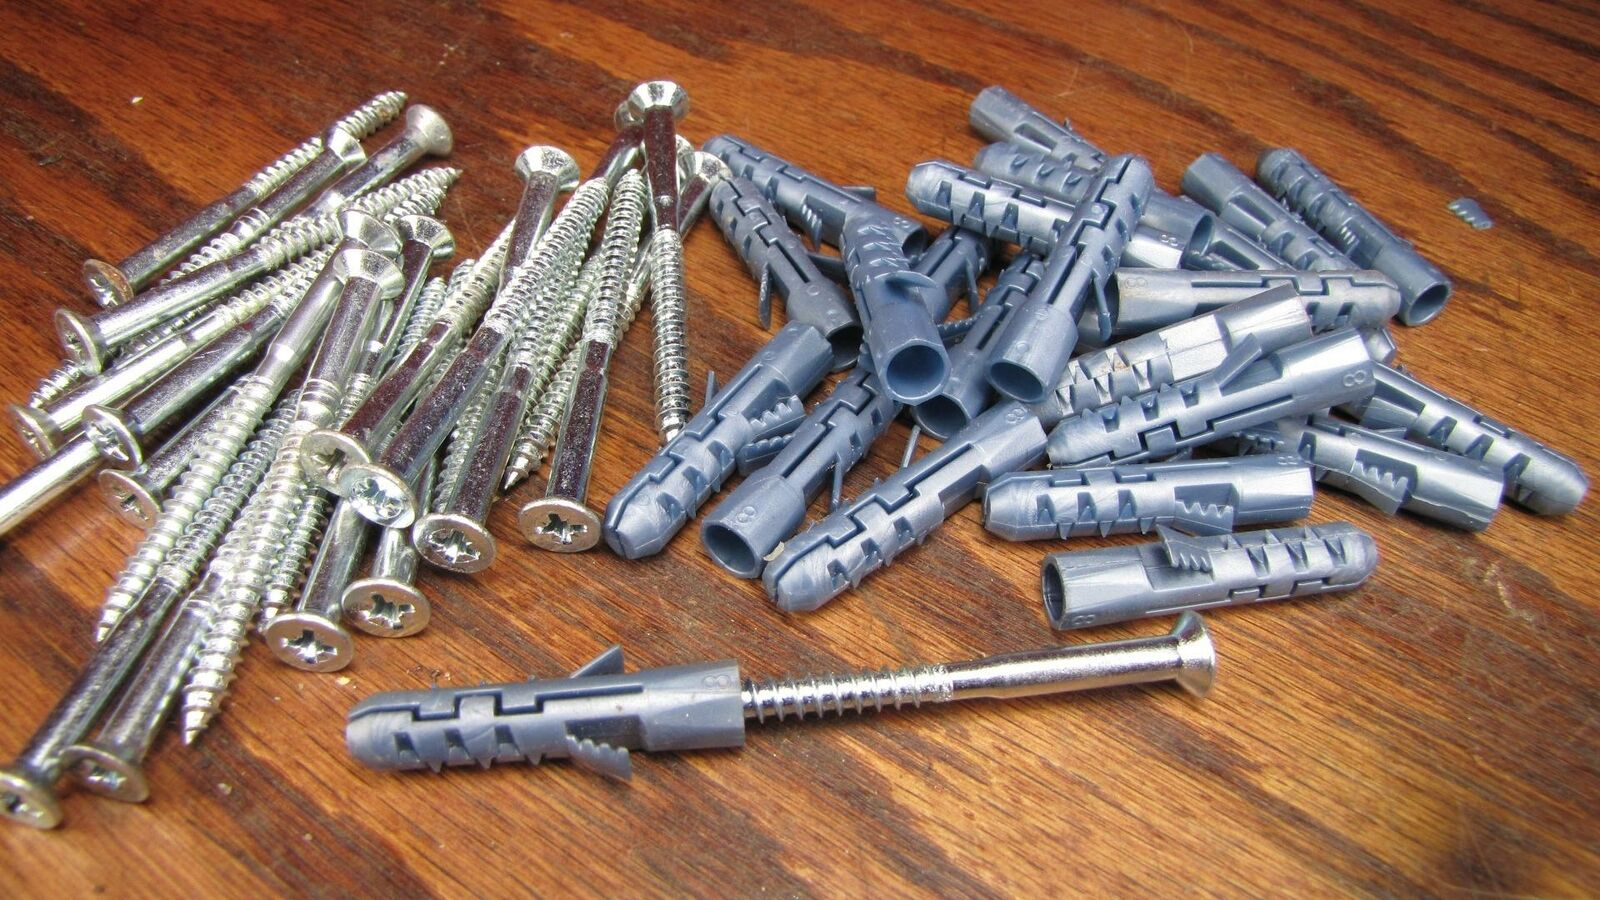 (25) elfa Easy Hang Shelving Wall Anchors #8 Fasteners with 2-1/2